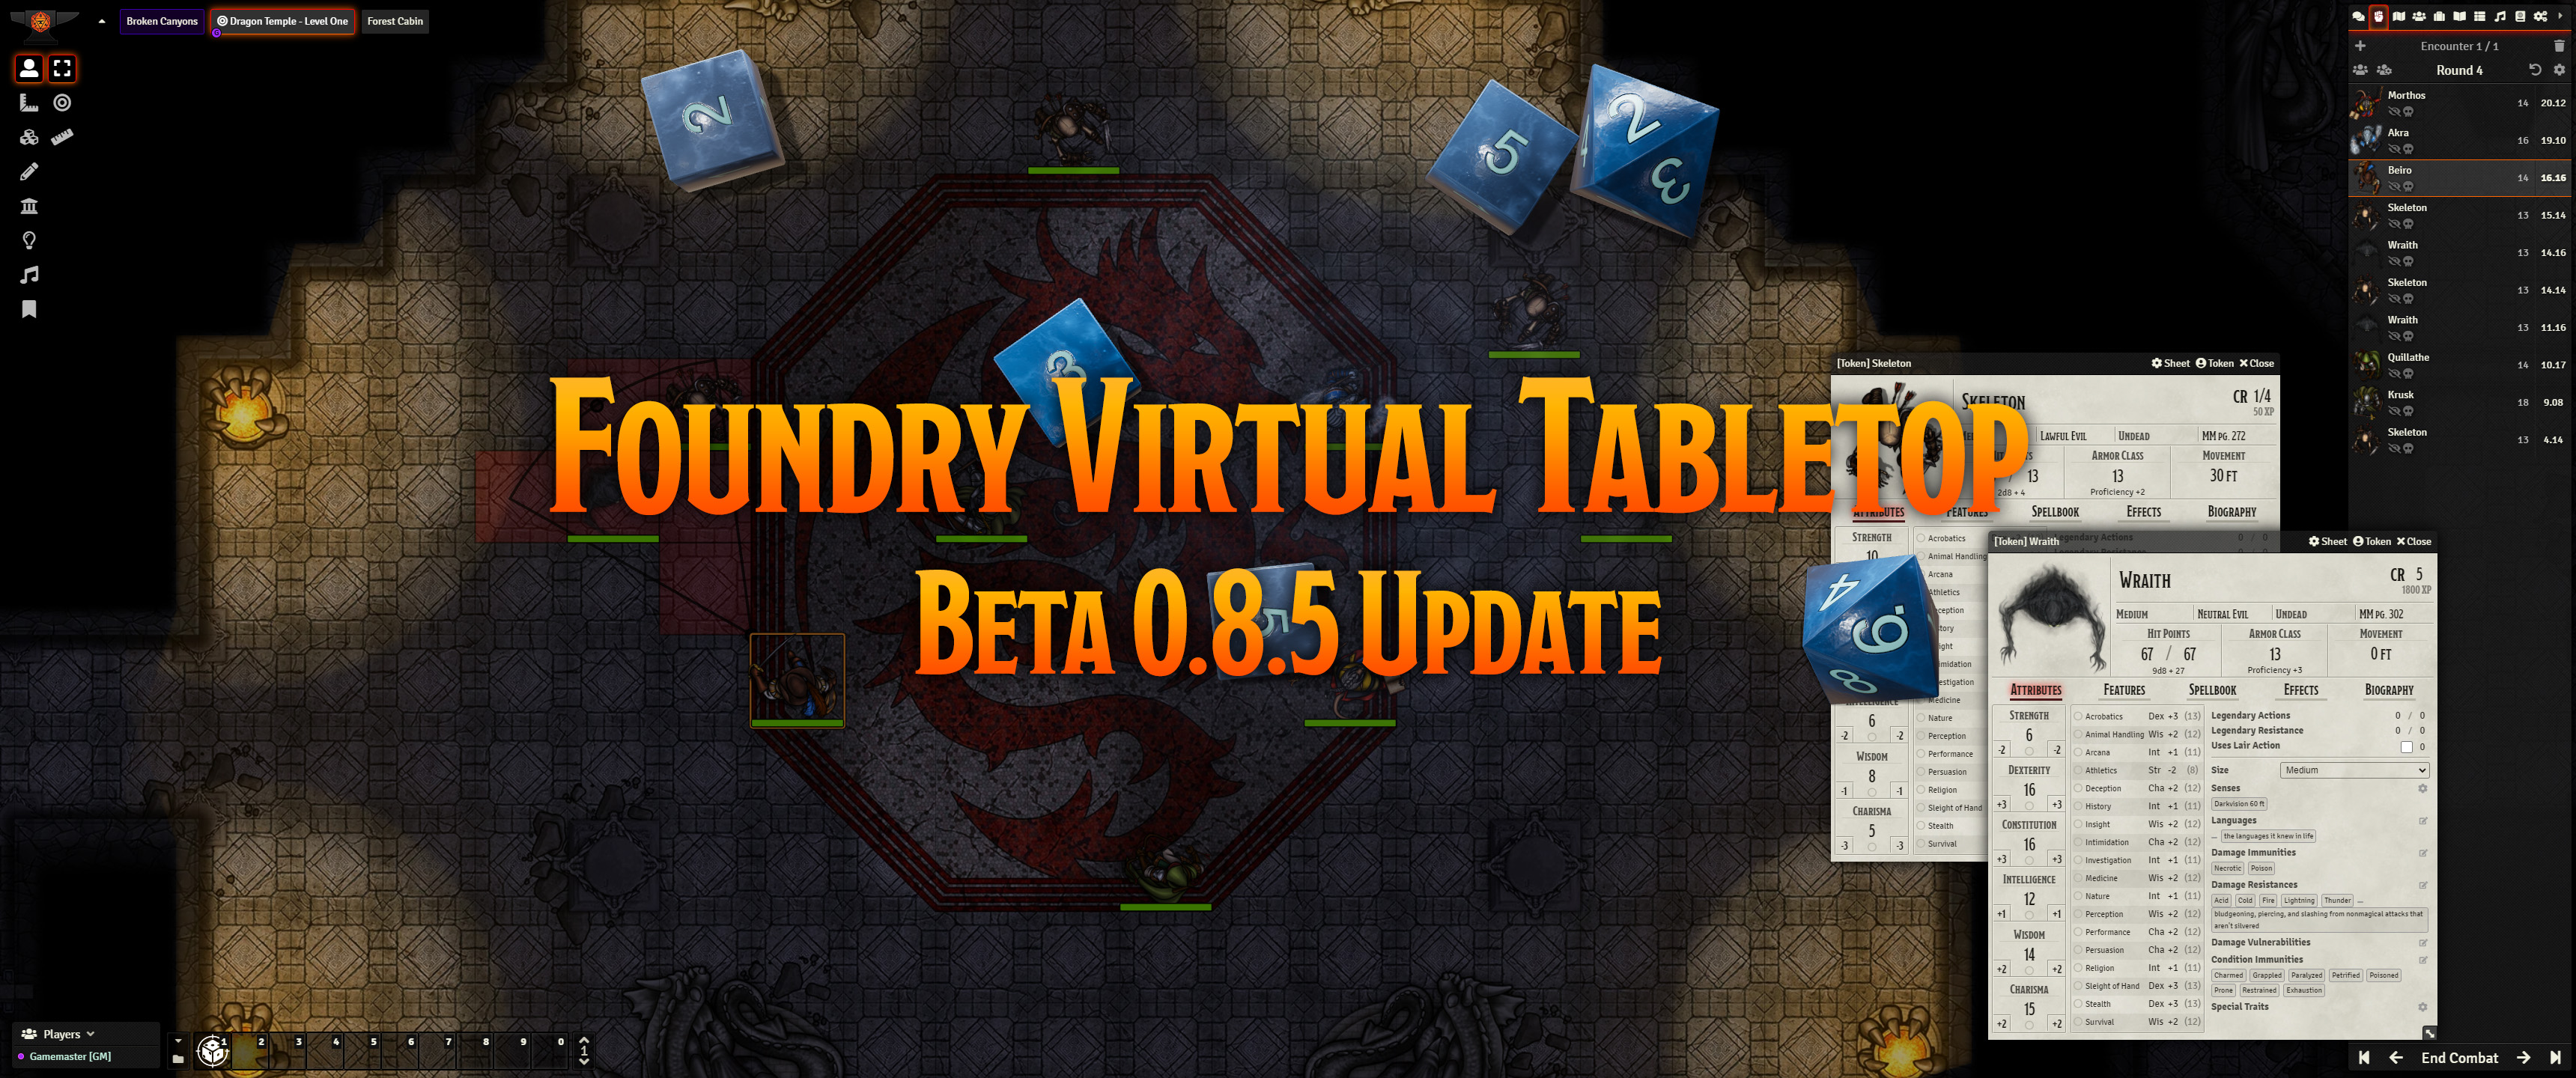 Release Notes for the Foundry Virtual Tabletop 0.8.5 version